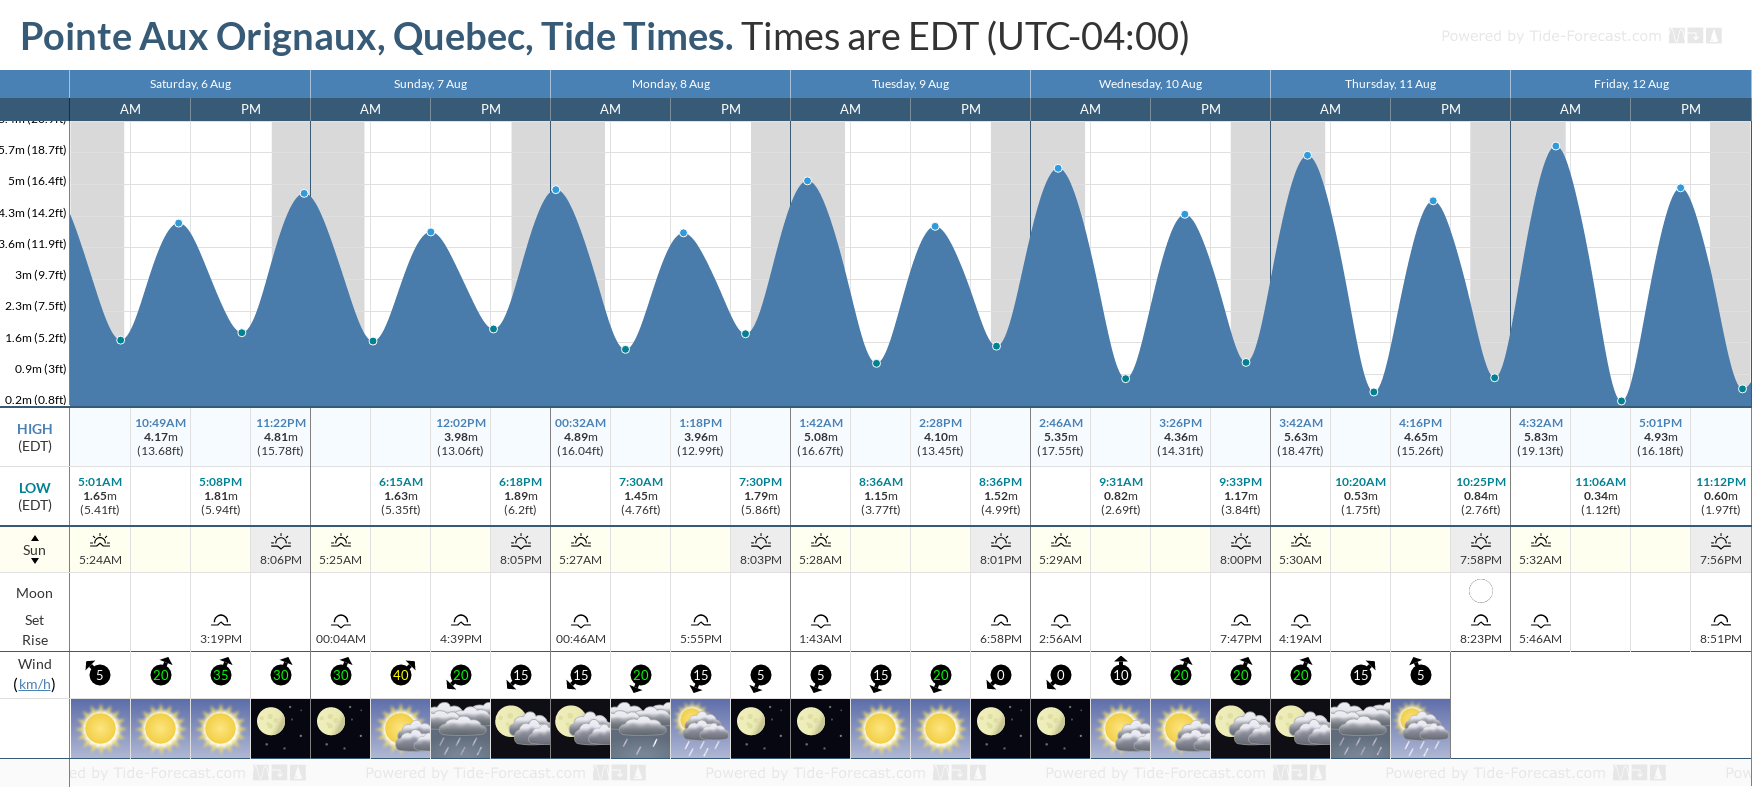 Pointe Aux Orignaux, Quebec Tide Chart including high and low tide tide times for the next 7 days